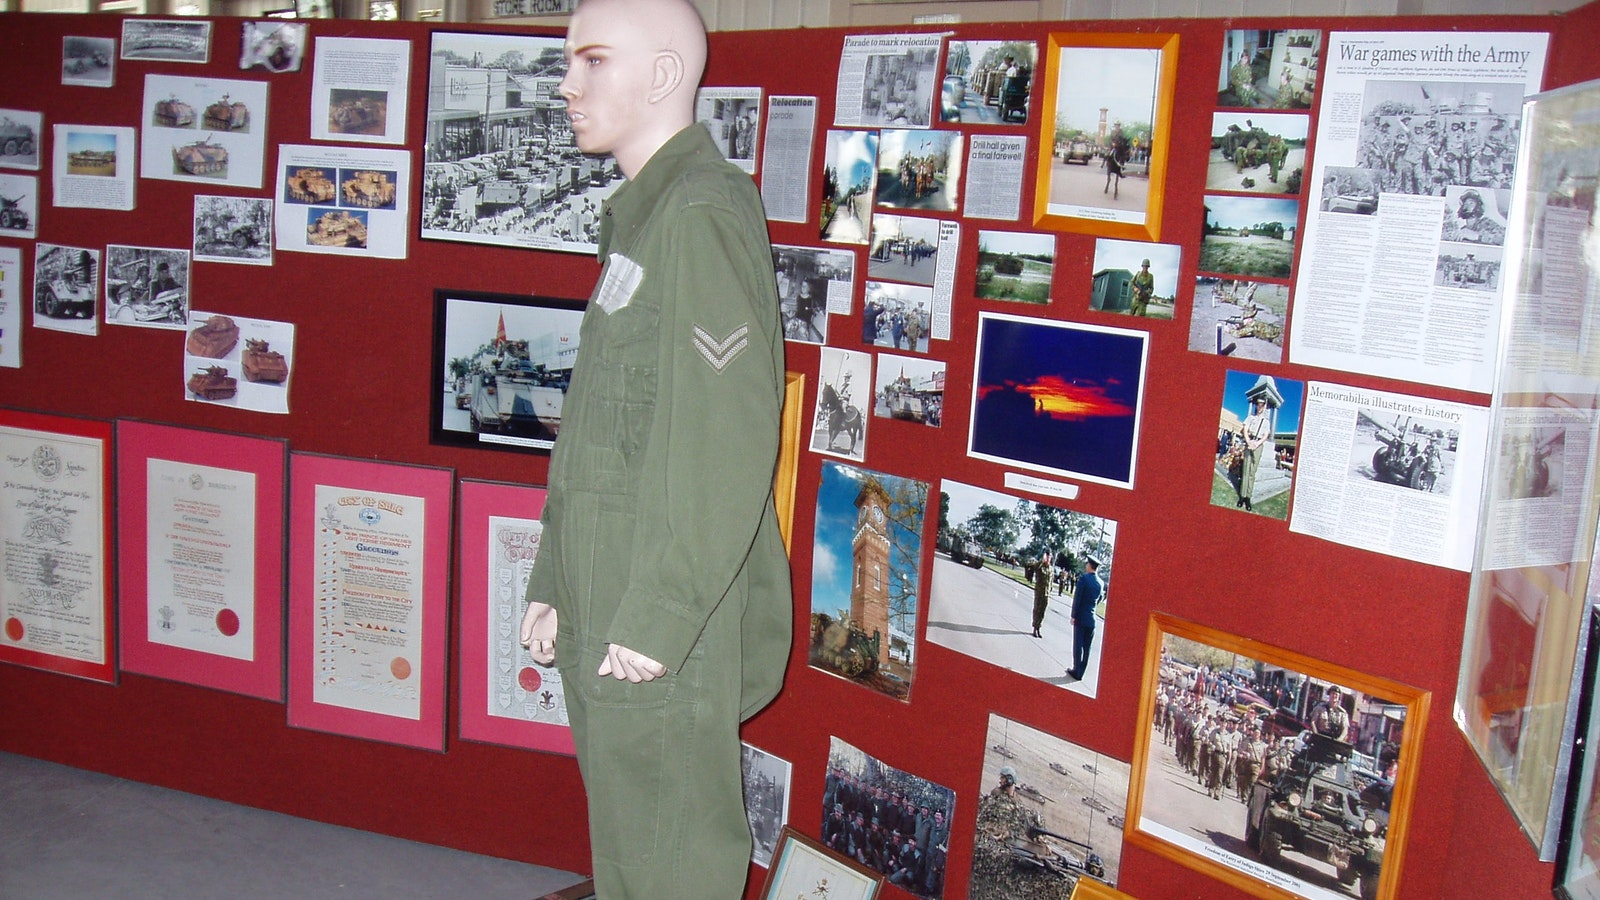 Gippsland Armed Forces Museum